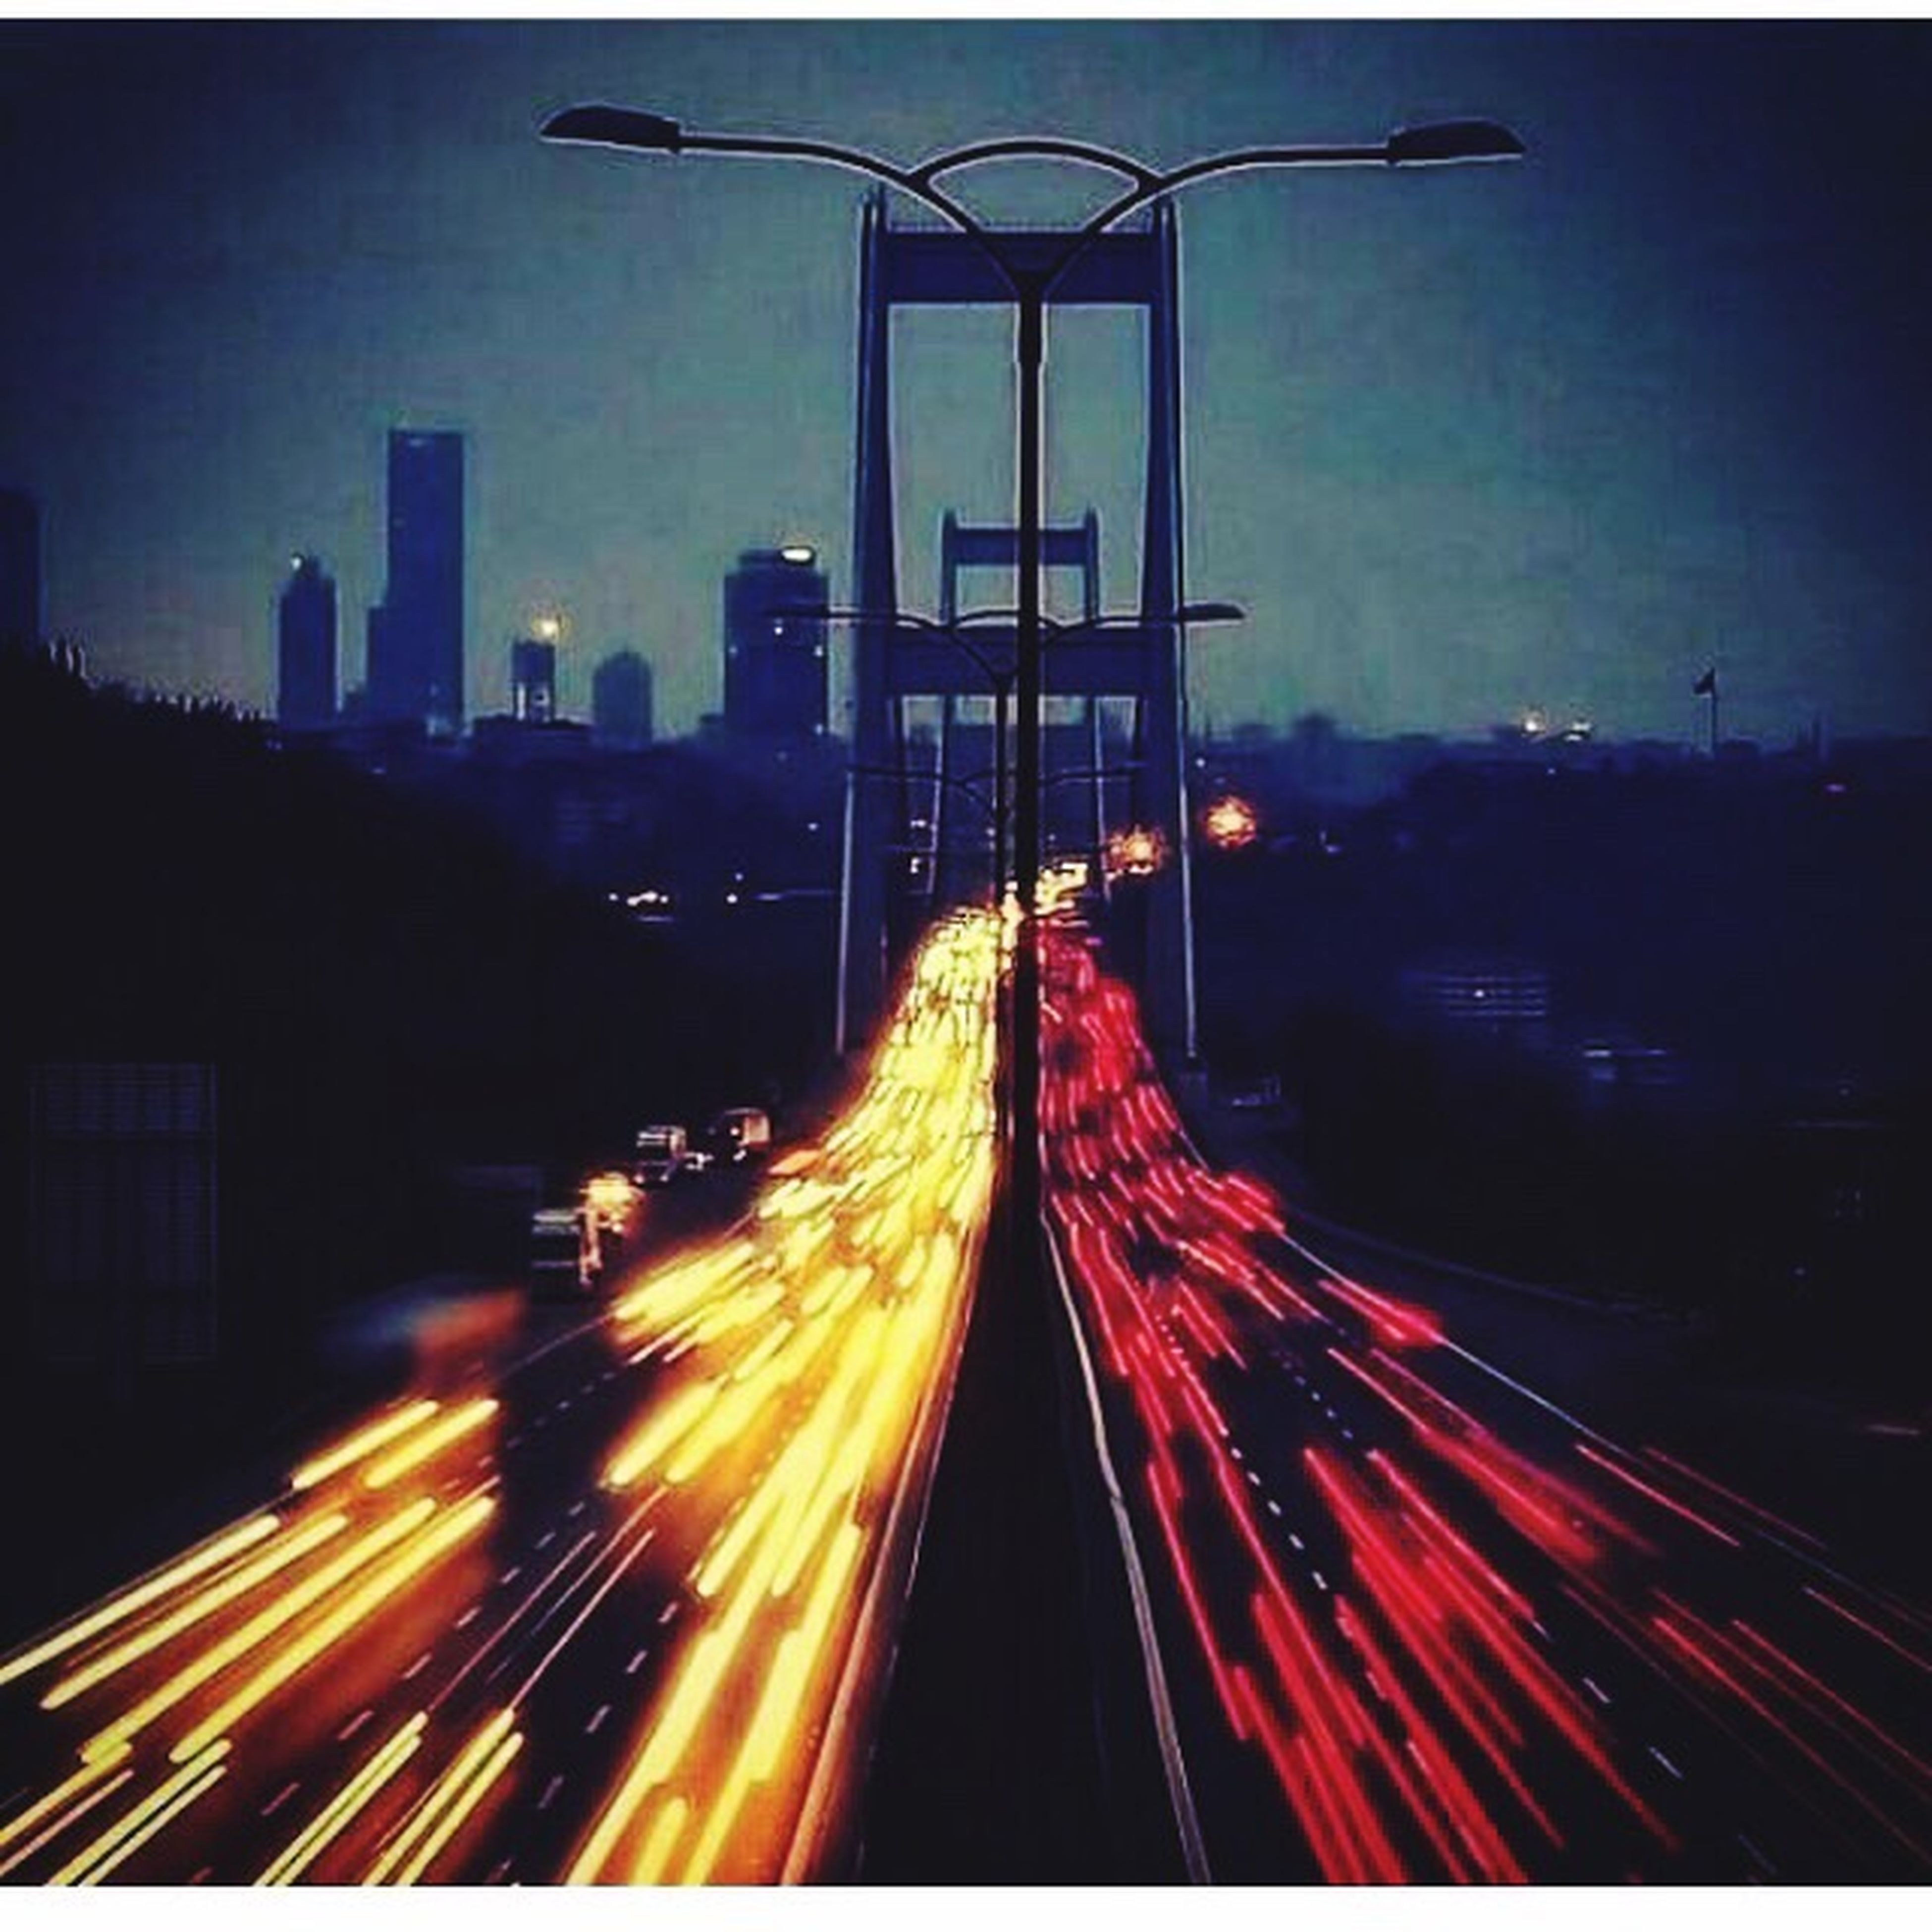 illuminated, long exposure, light trail, night, transportation, motion, speed, blurred motion, city, architecture, traffic, red, built structure, on the move, road, city life, the way forward, sky, building exterior, high angle view